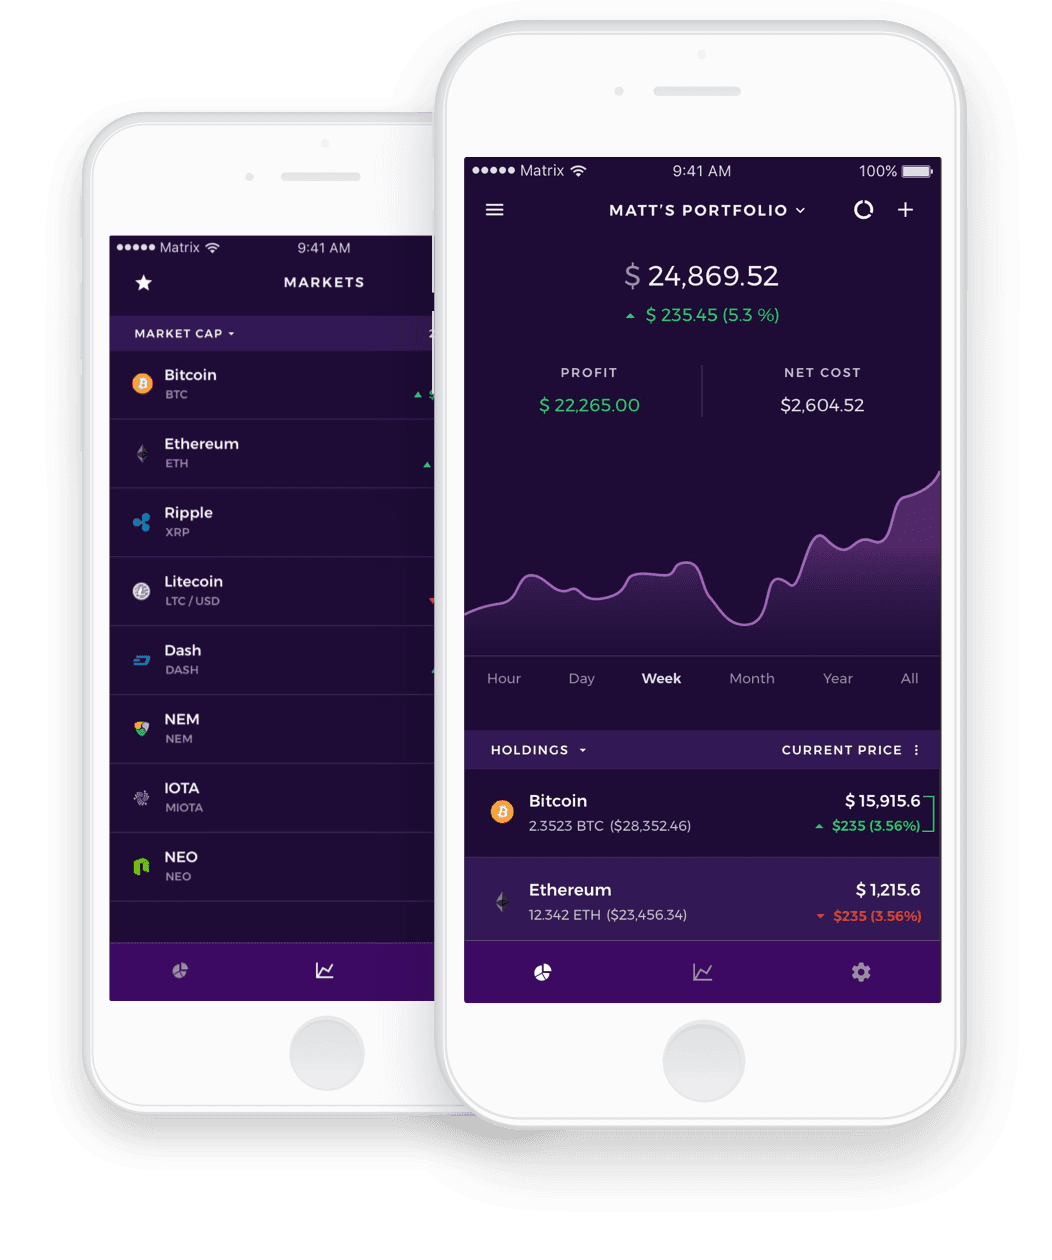 Matrix Portfolio - Cryptocurrency, Bitcoin, Ethereum altcoin tracker